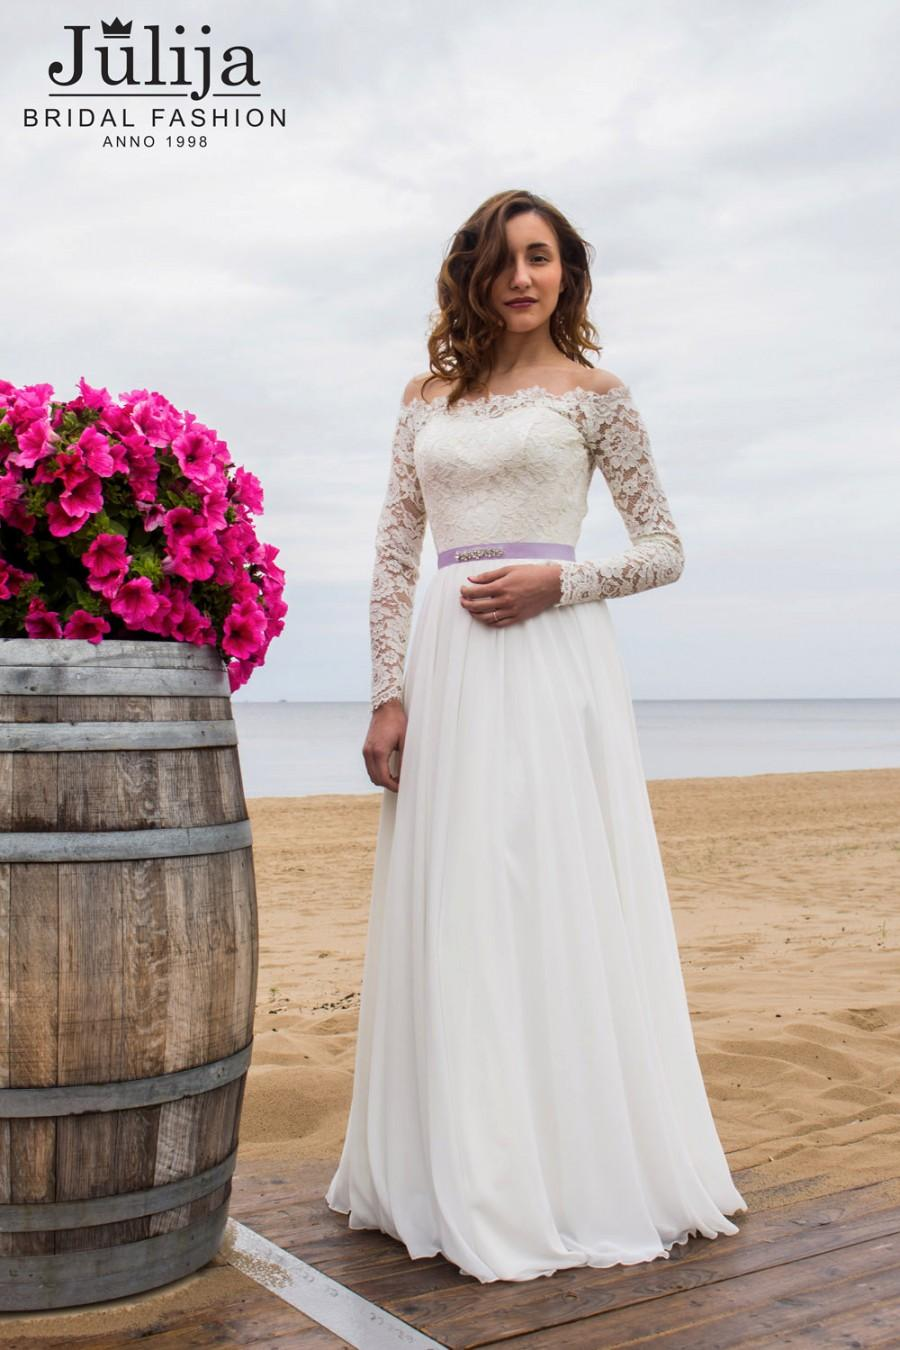 f02873f75bdb7 Simple Wedding Dress With Long Sleeve, Closed Lace Back Bridal Dress ...